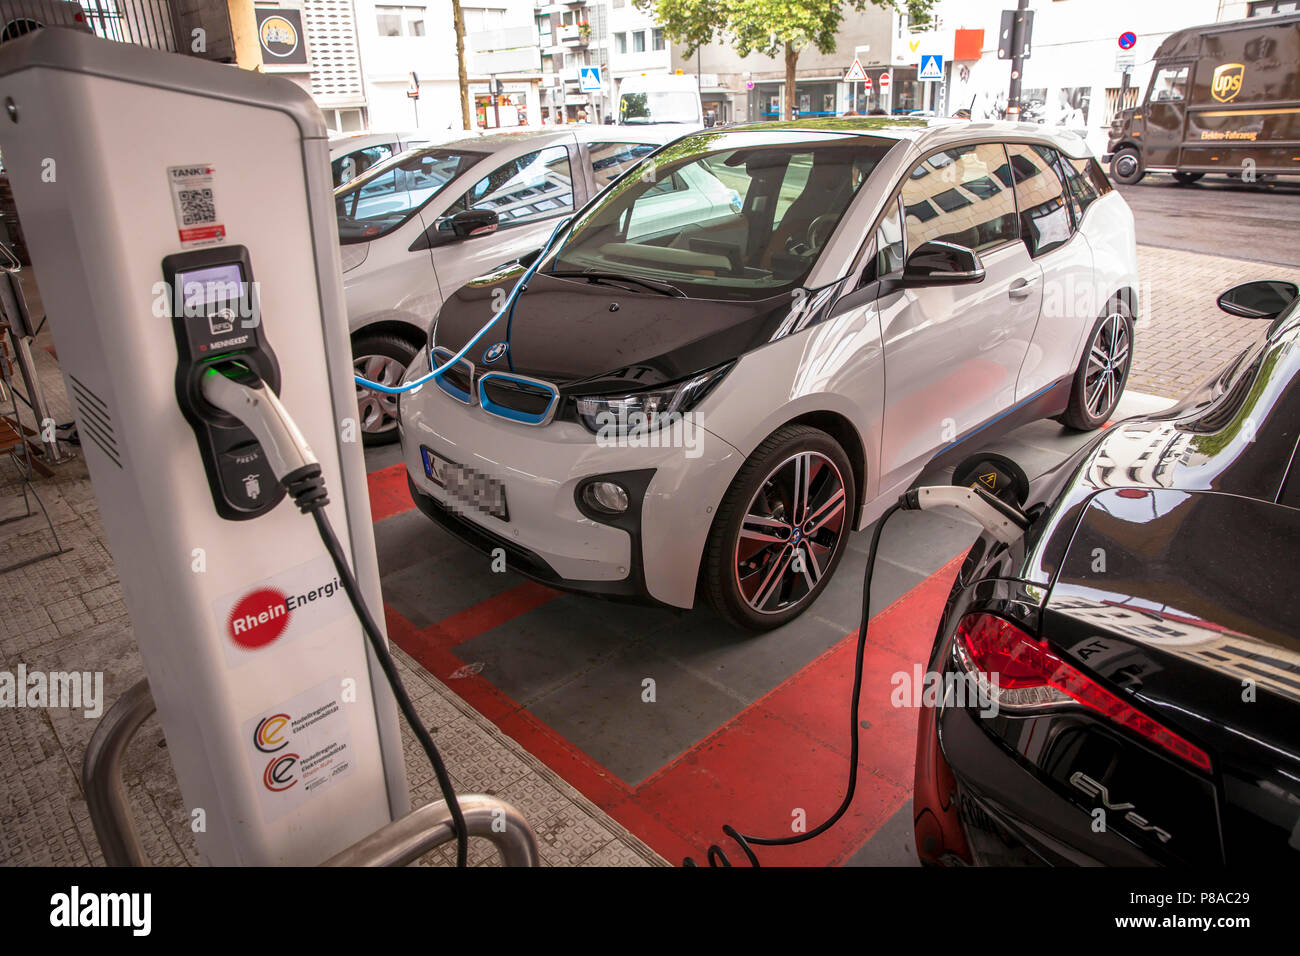 Electric Cars At A Charging Station At The Street Lungengasse